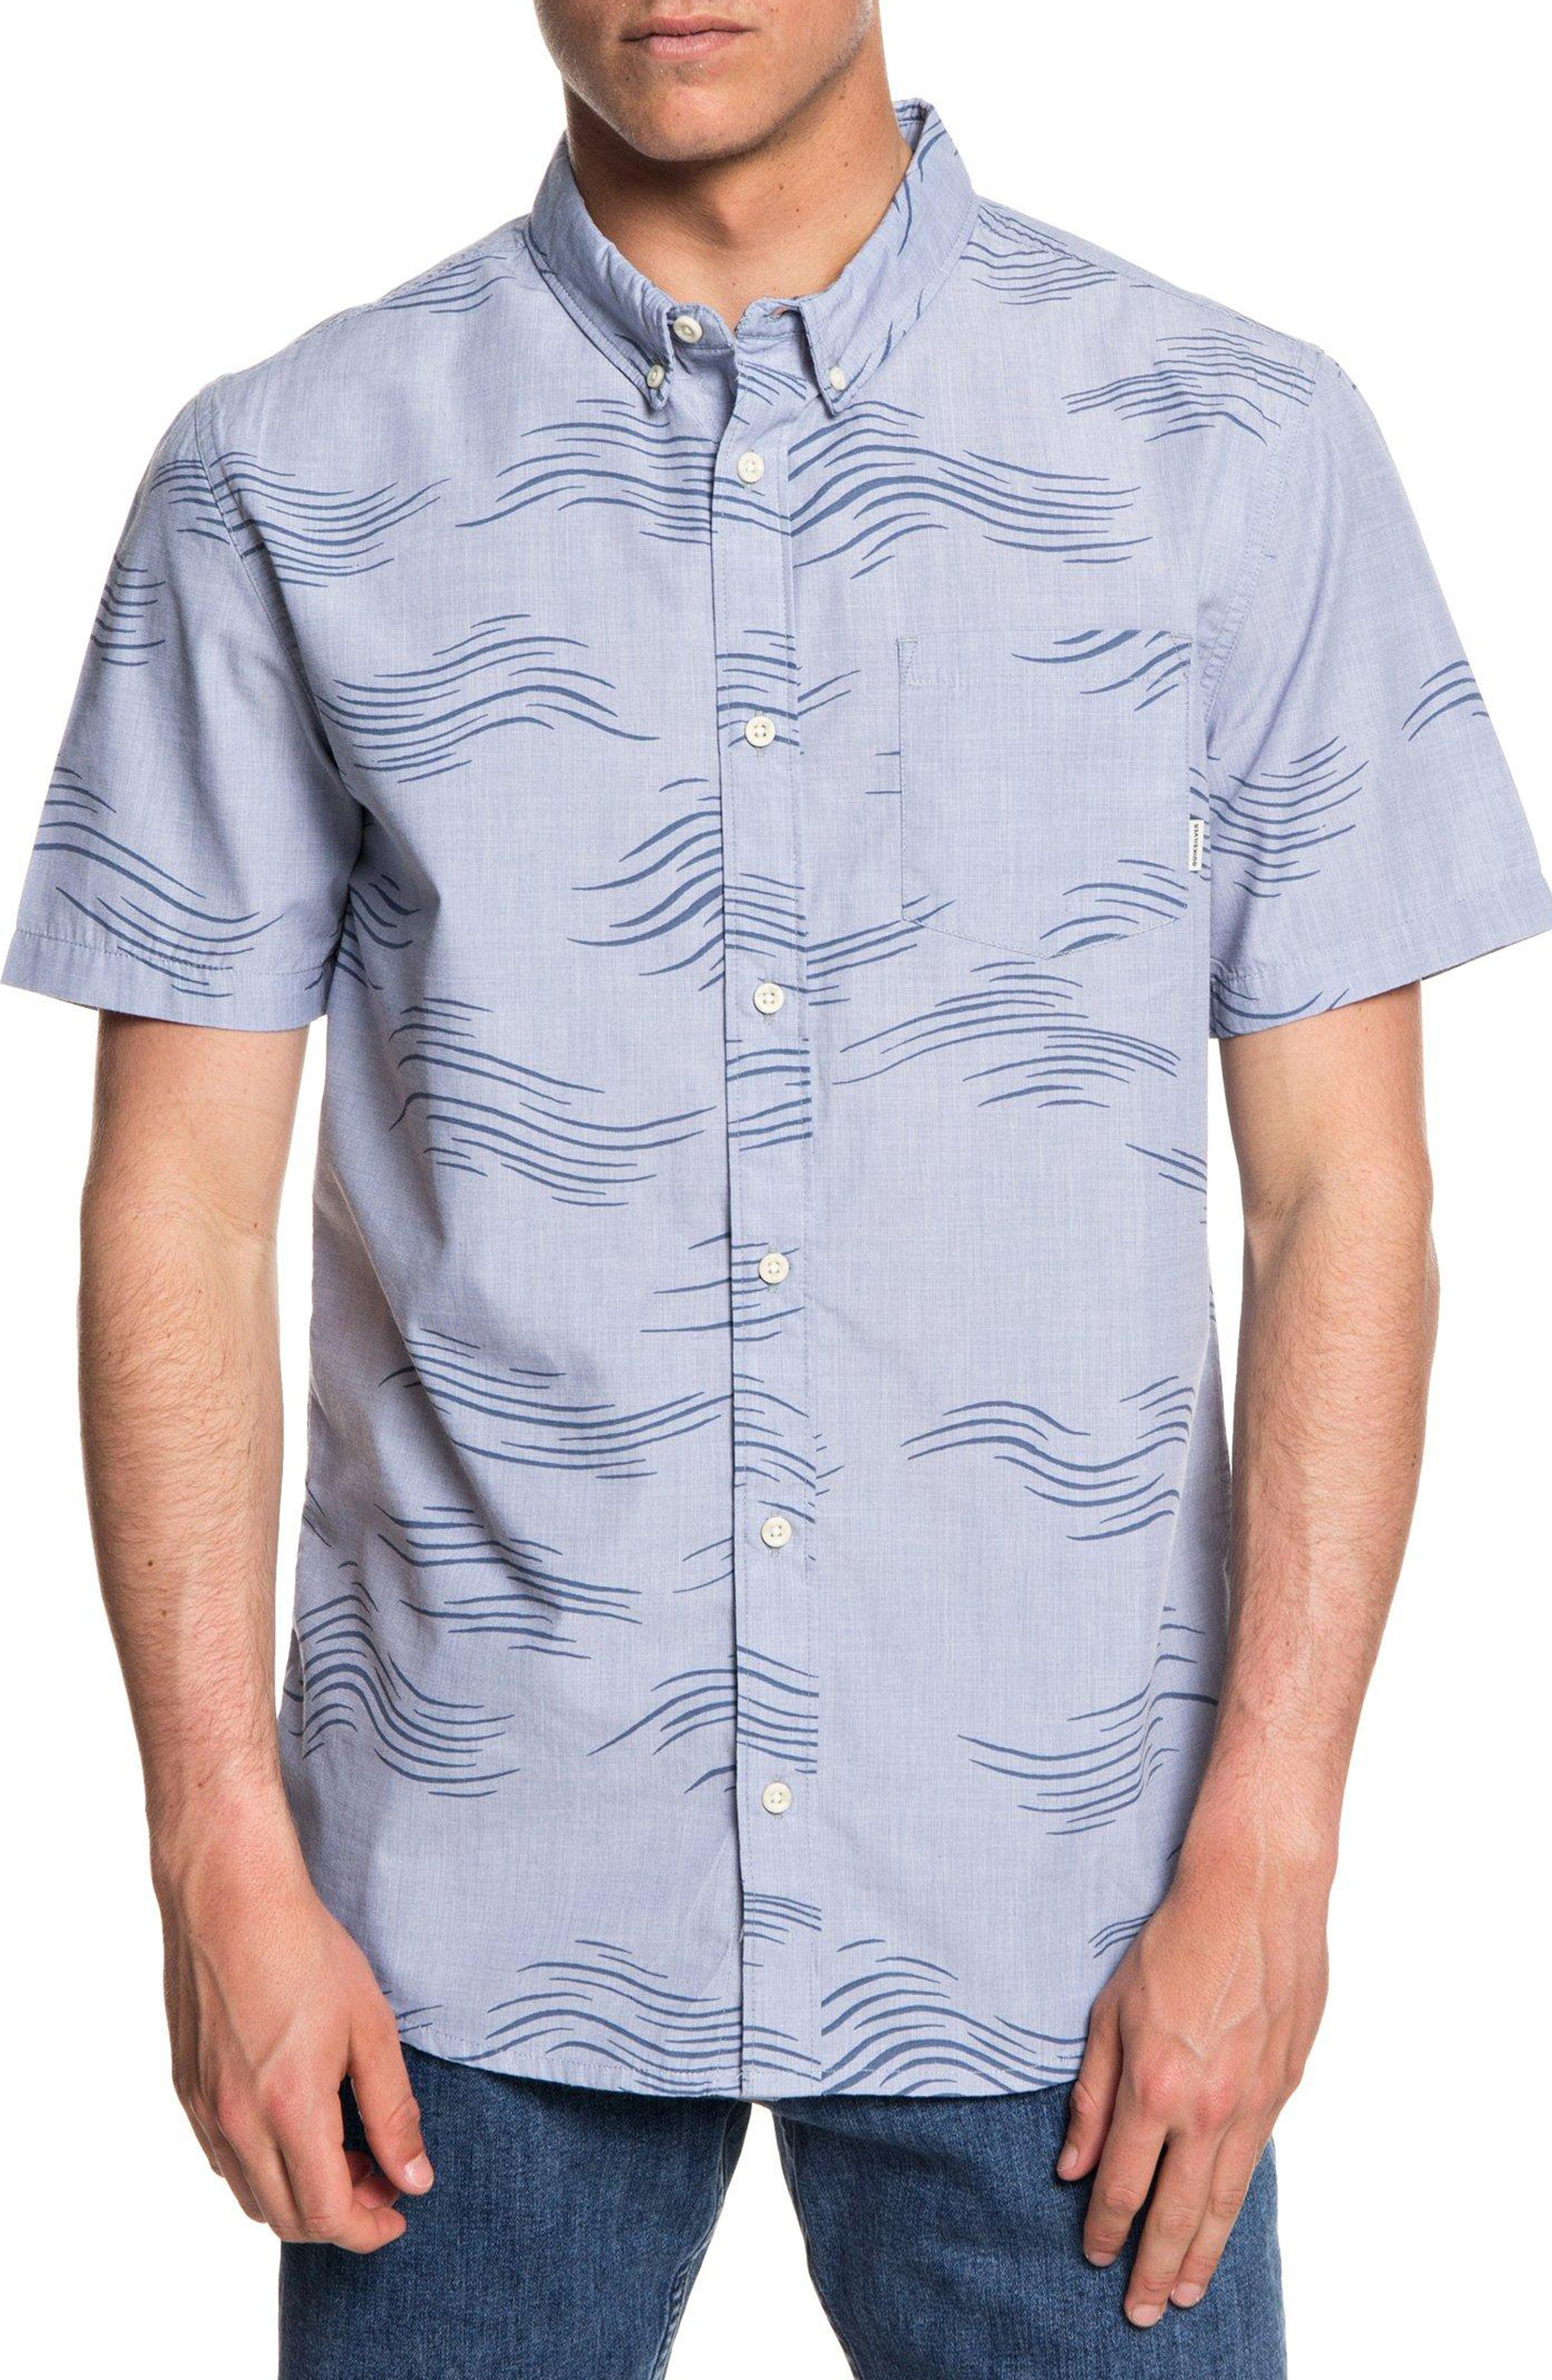 Valley Groove Print Woven Shirt,                         Main,                         color, BIJOU BLUE VALLEY GROVE